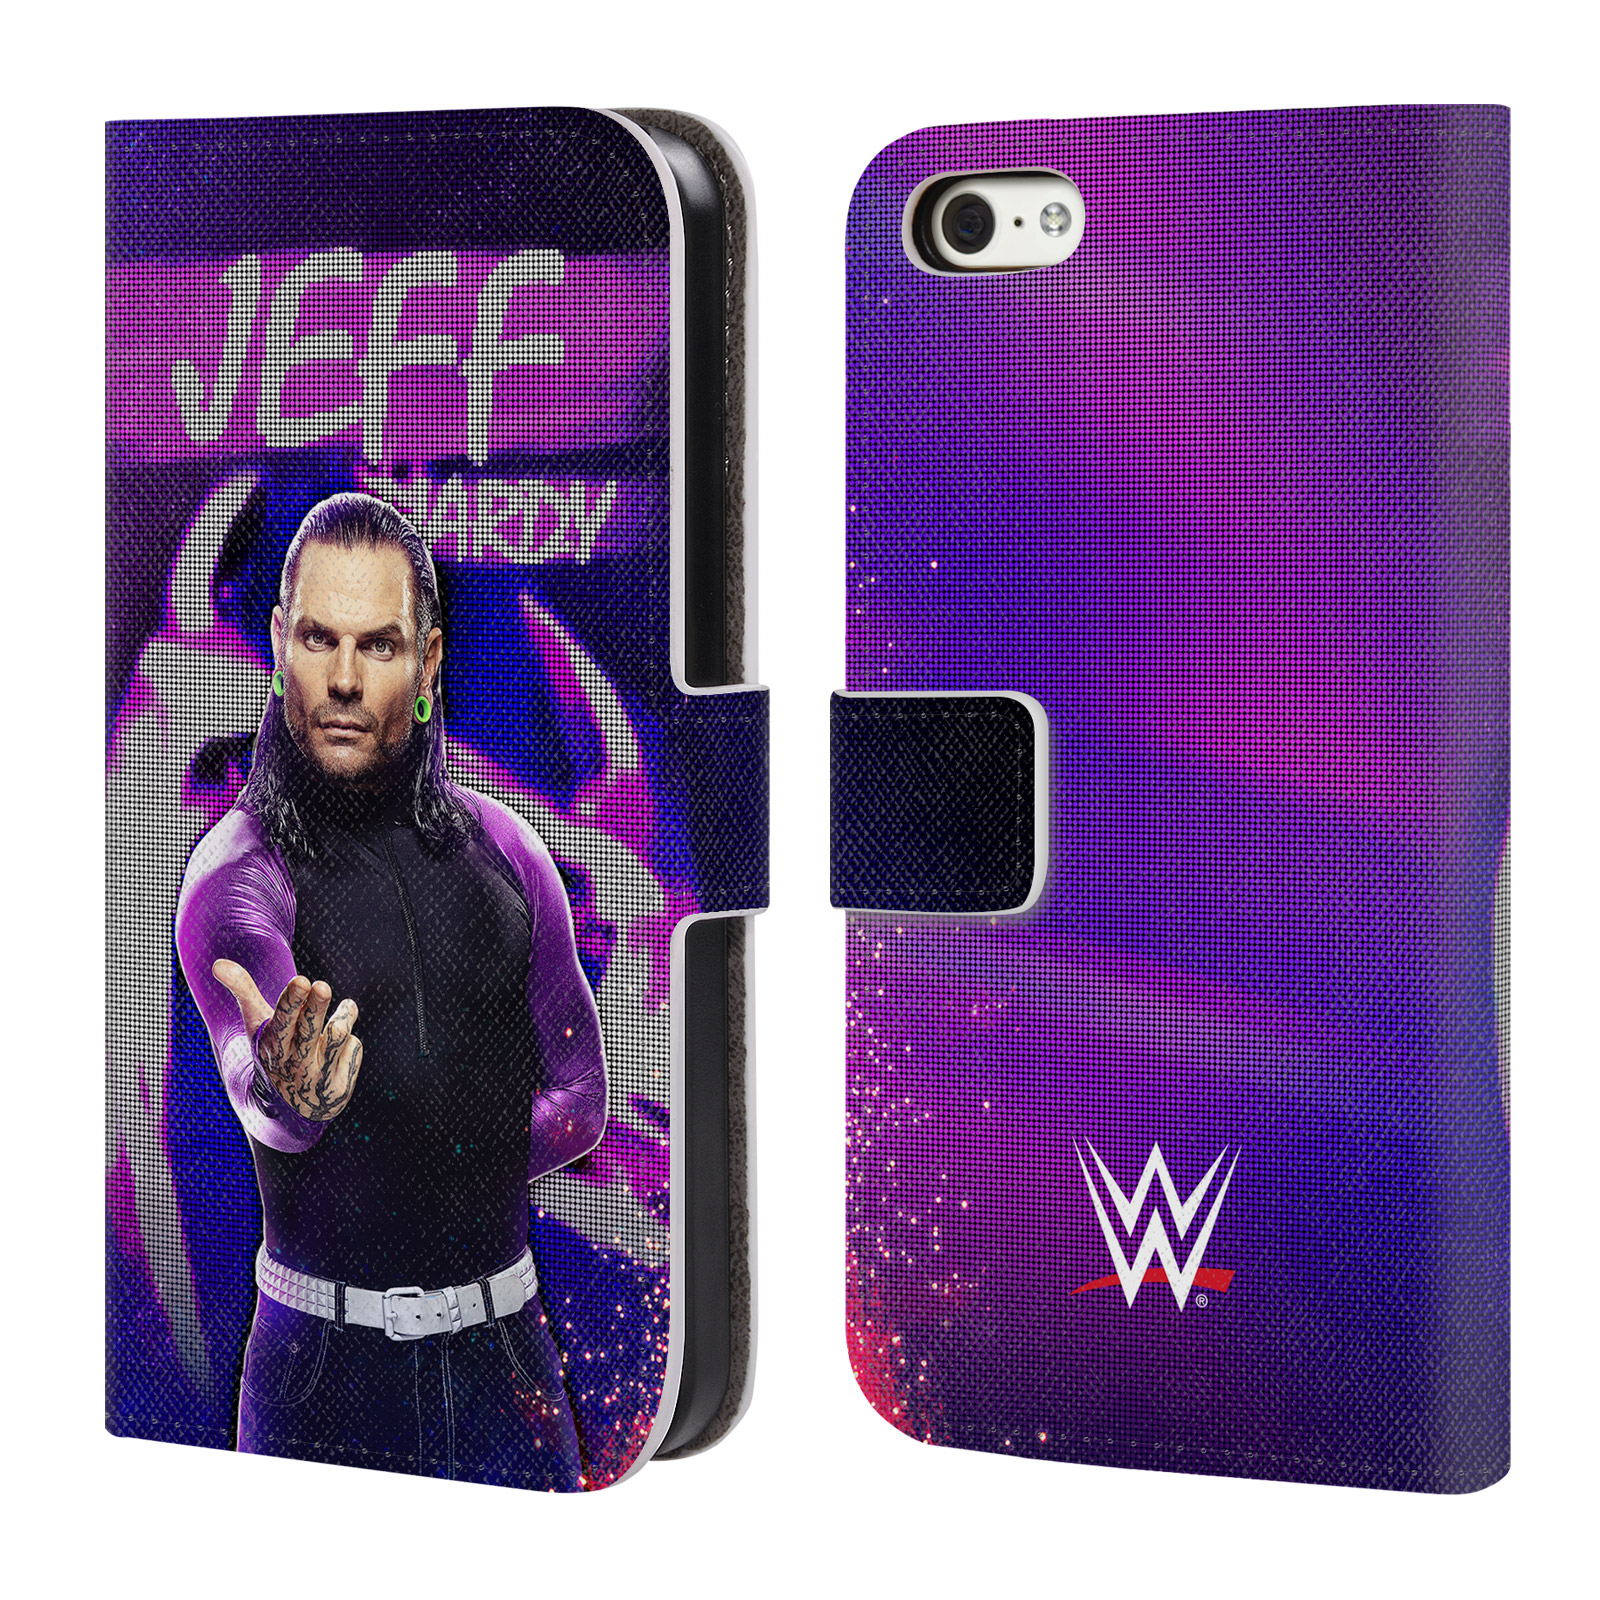 OFFICIAL WWE JEFF HARDY LEATHER BOOK WALLET CASE COVER FOR APPLE IPHONE PHONES